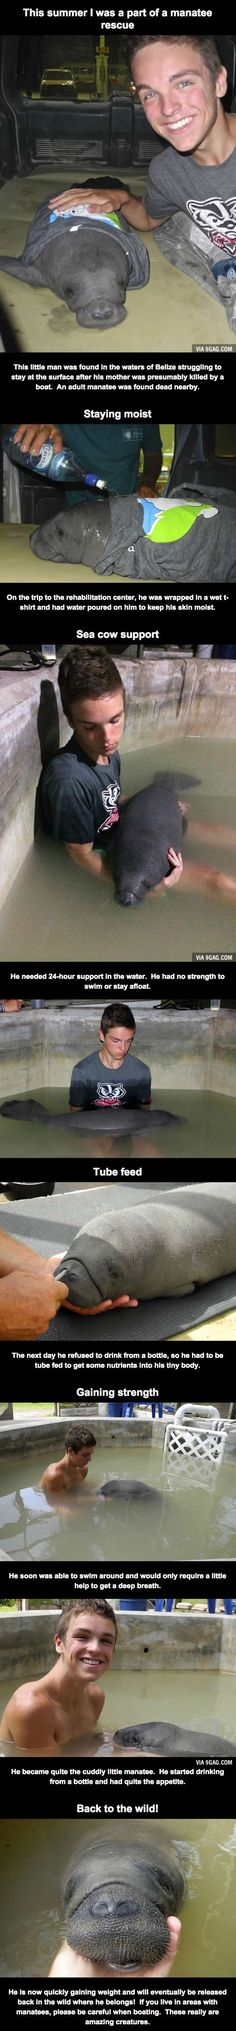 The tale of this baby manatee being saved is touching and beautiful